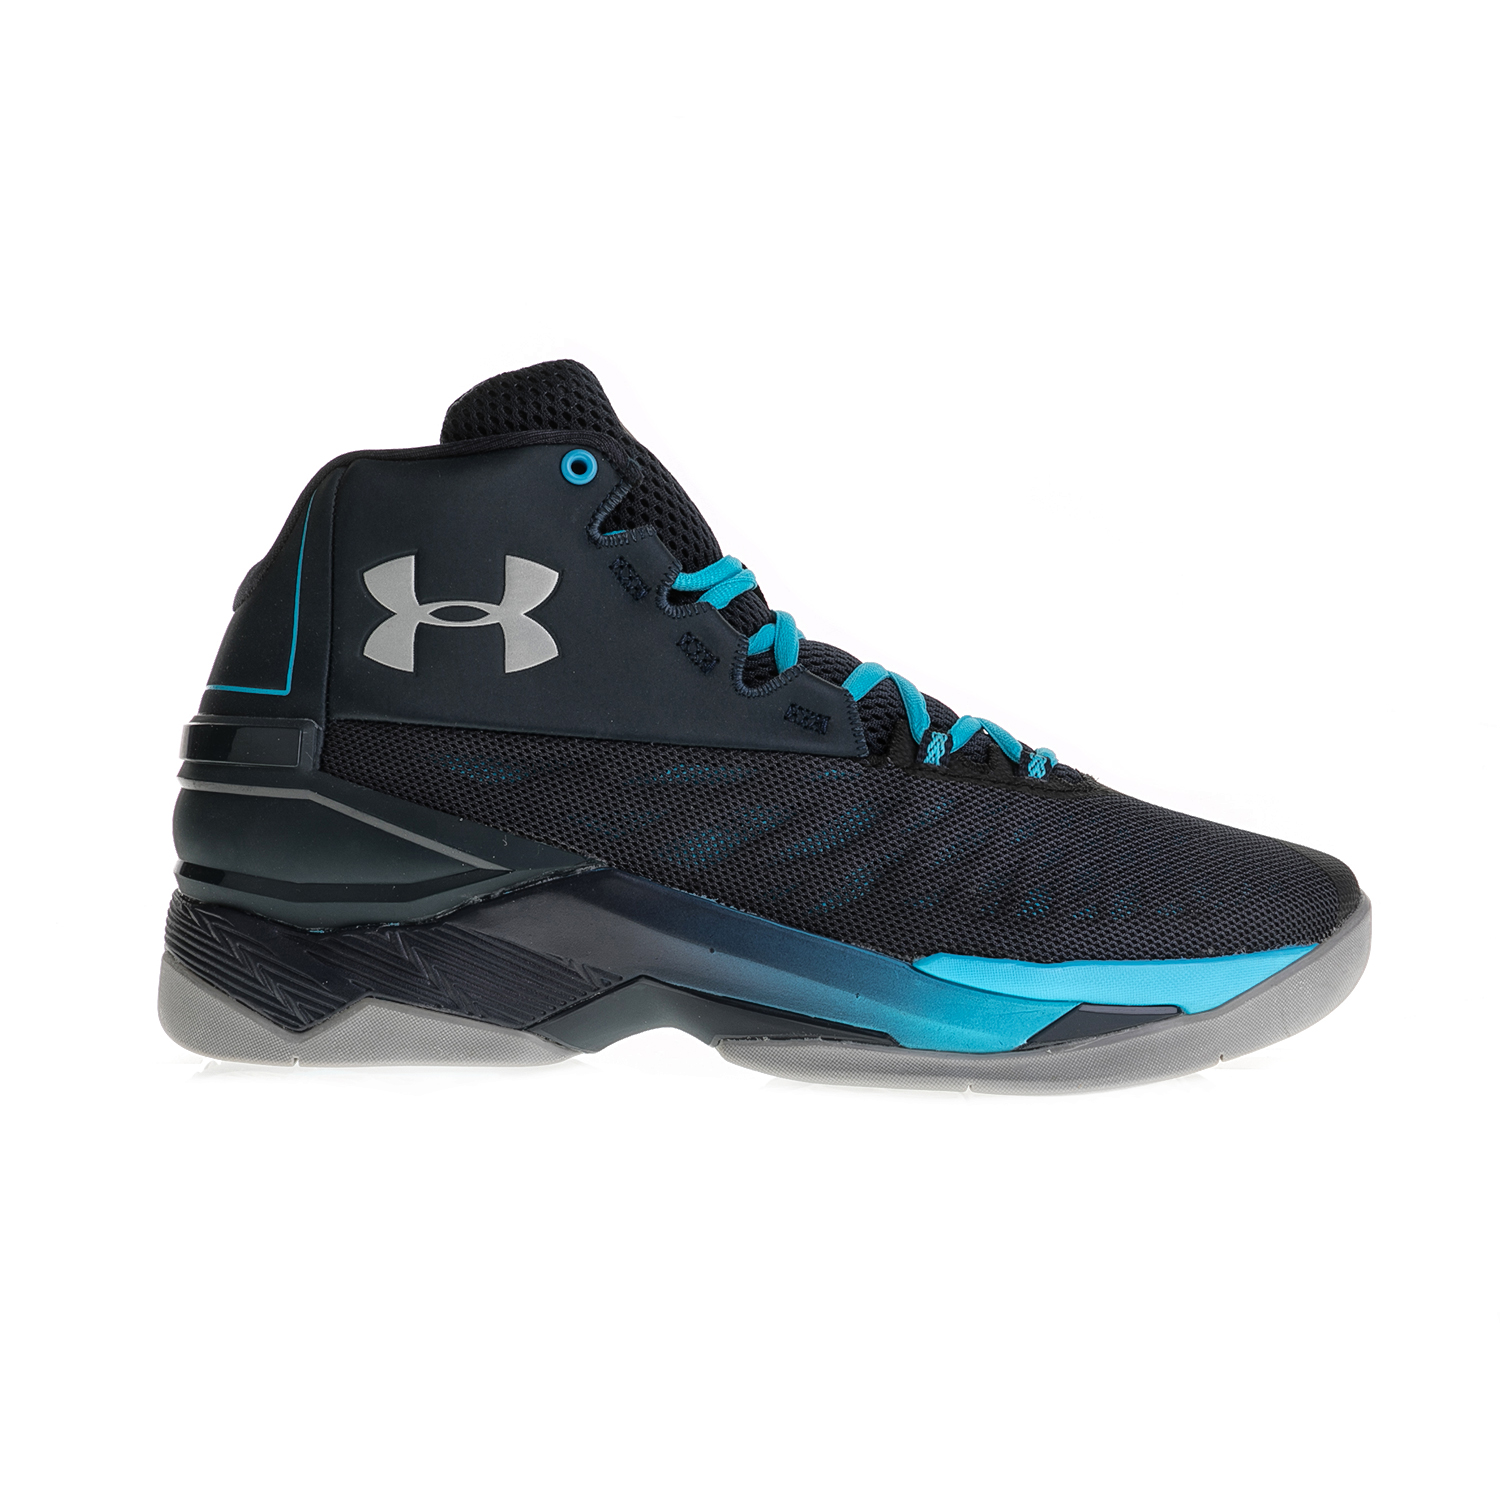 UNDER ARMOUR – Ανδρικά αθλητικά παπούτσια UNDER ARMOUR Longshot μαύρα-μπλε